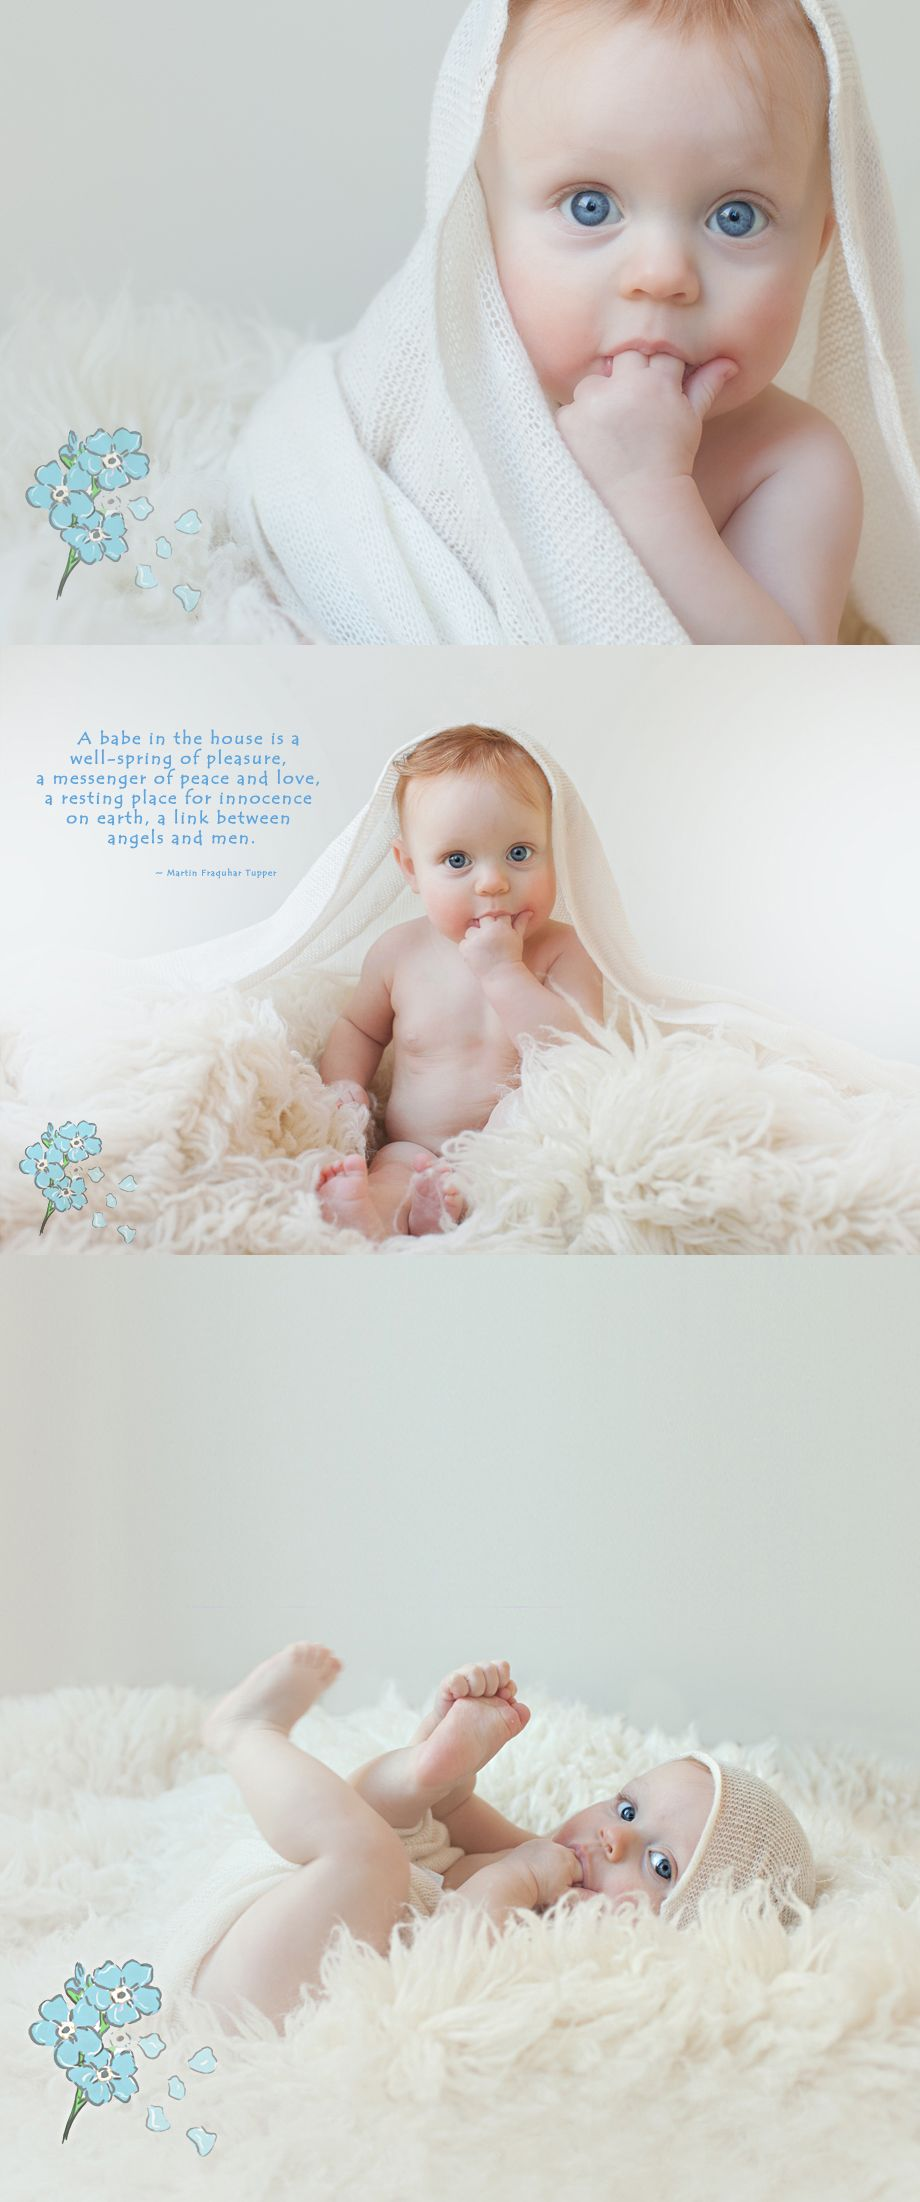 Sweet Baby Quotes Baby photos 6 month old baby photos